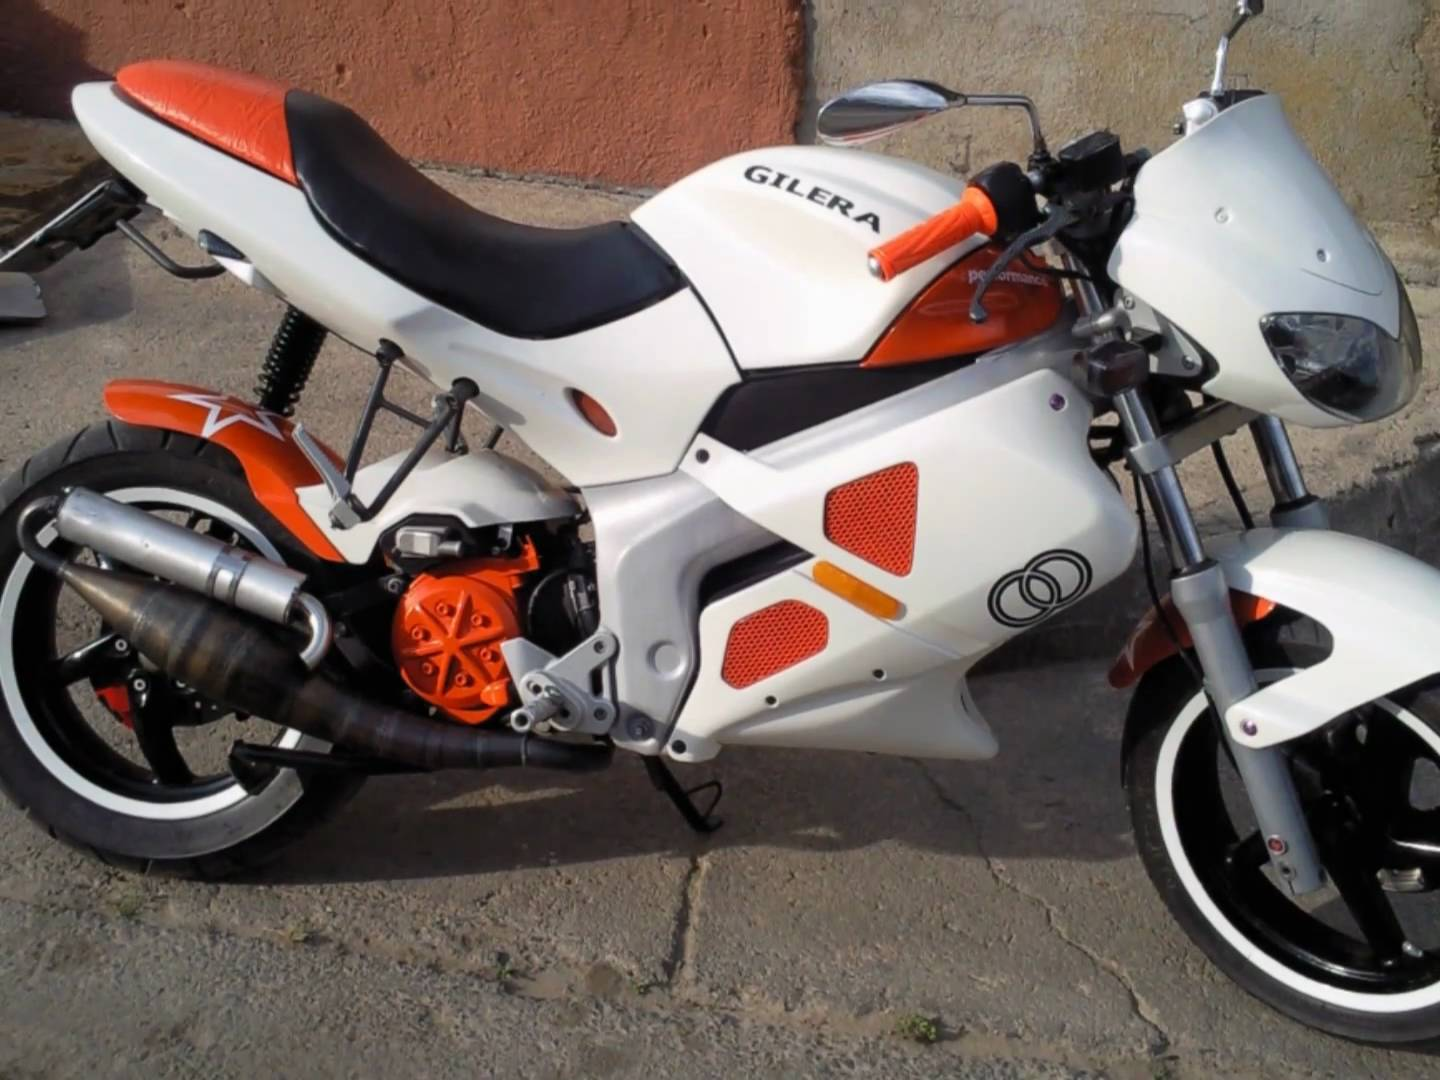 Gilera DNA 50 images #74339